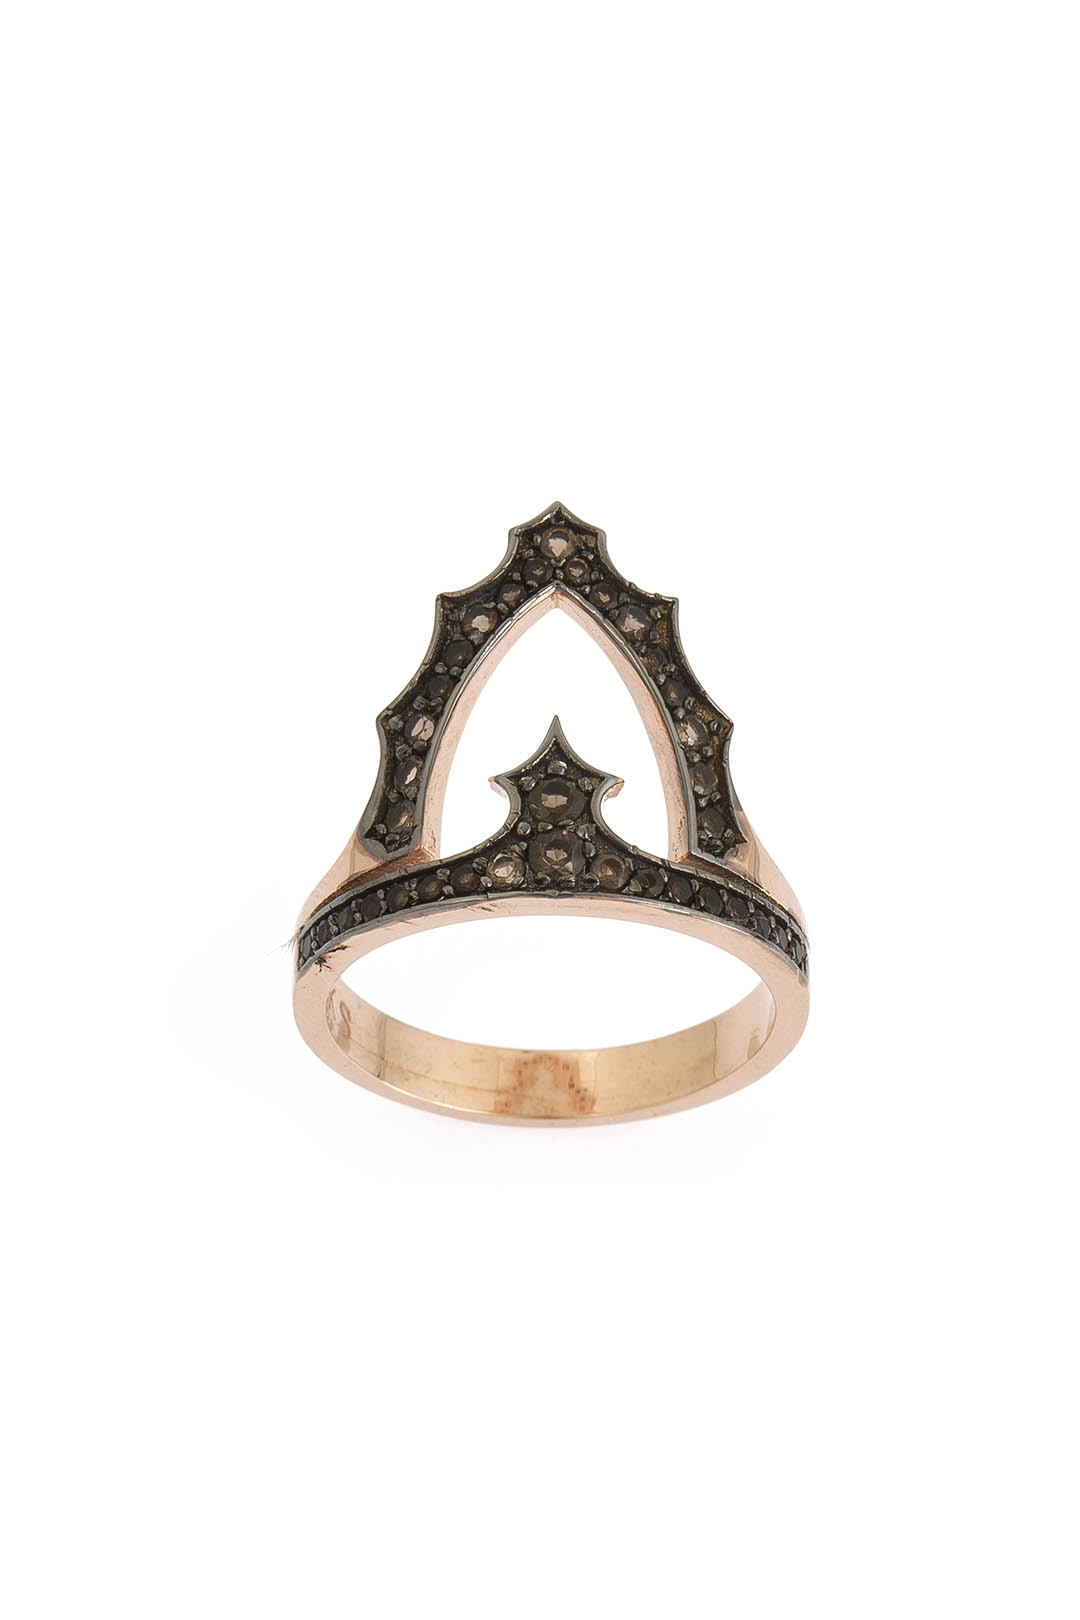 REBEL STAR RING